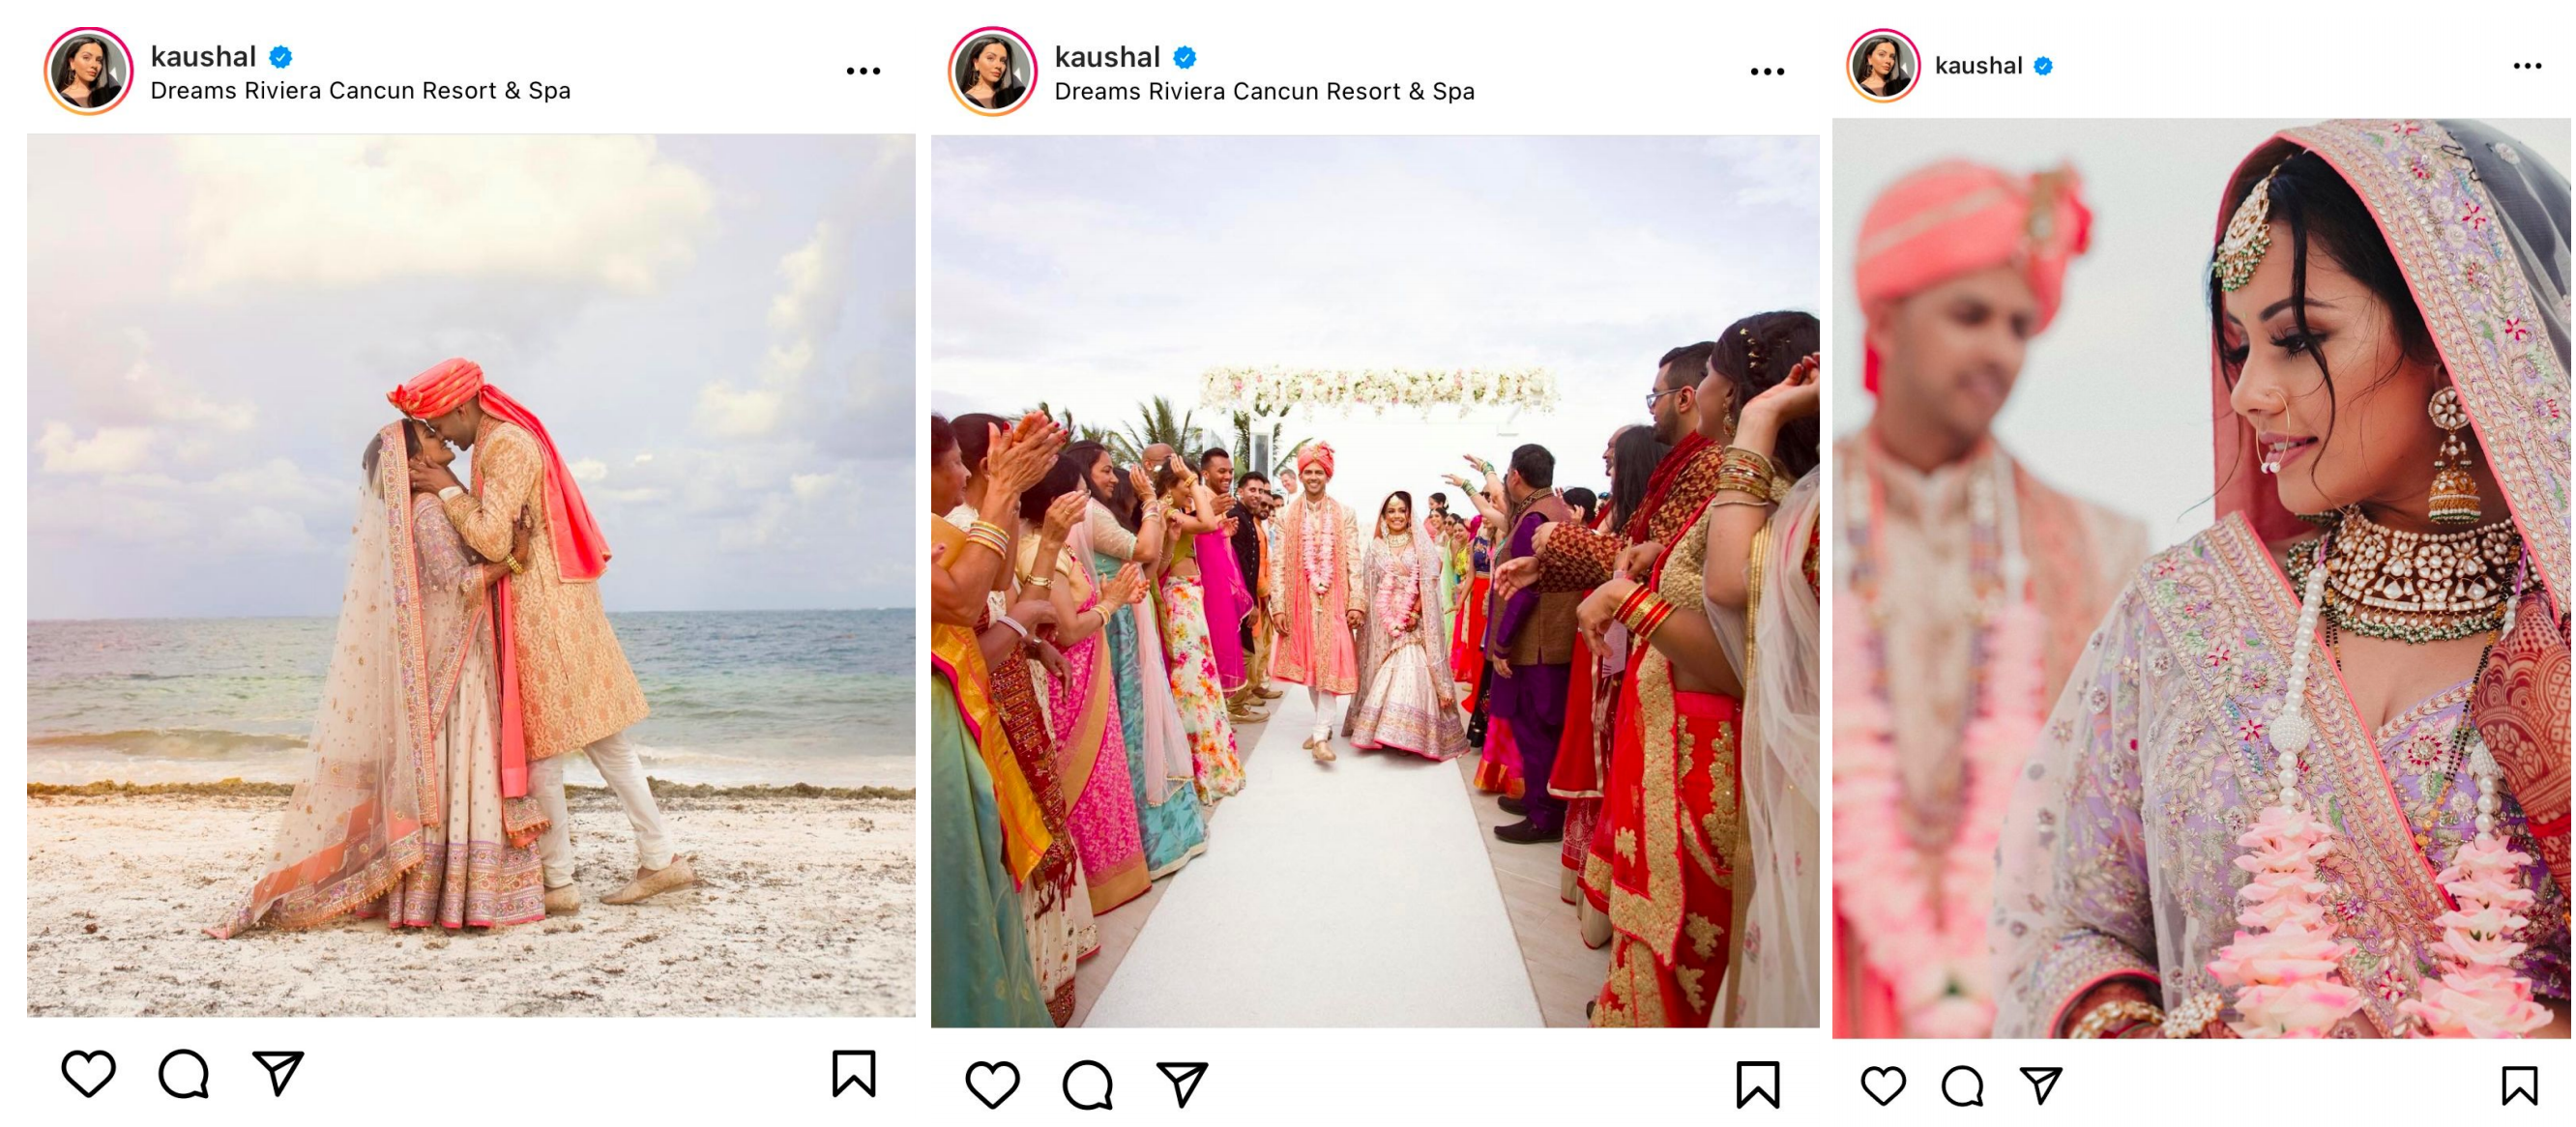 Mexico weddings abroad- Kaushal and Vex's Big Day